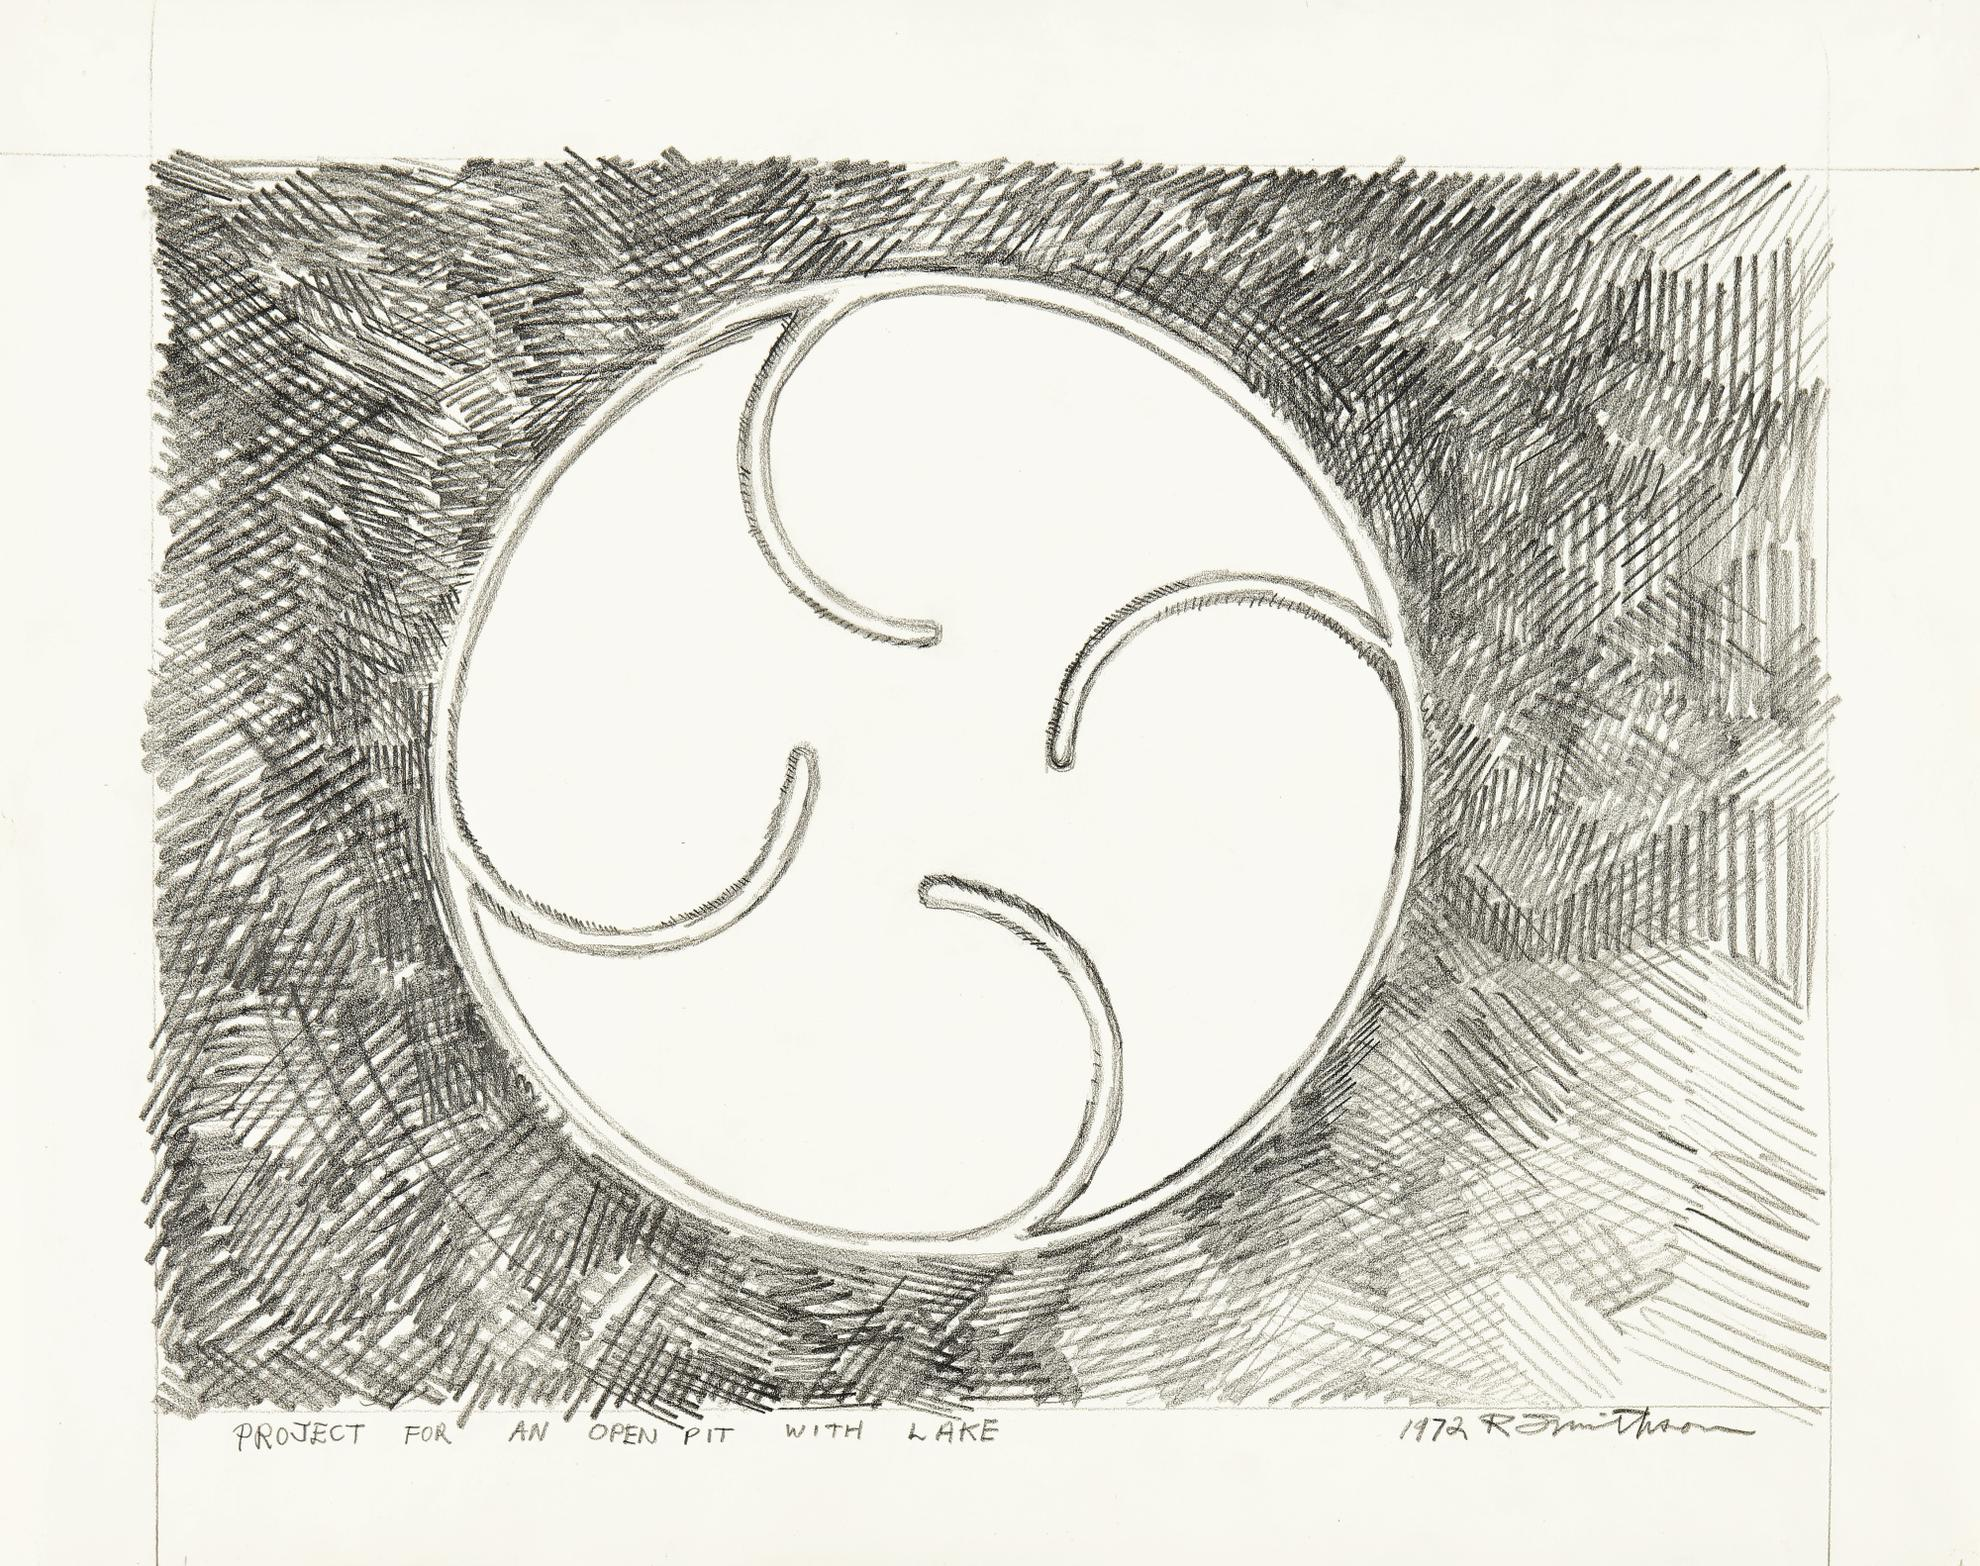 Robert Smithson-Project For An Open Pit With Lake-1972